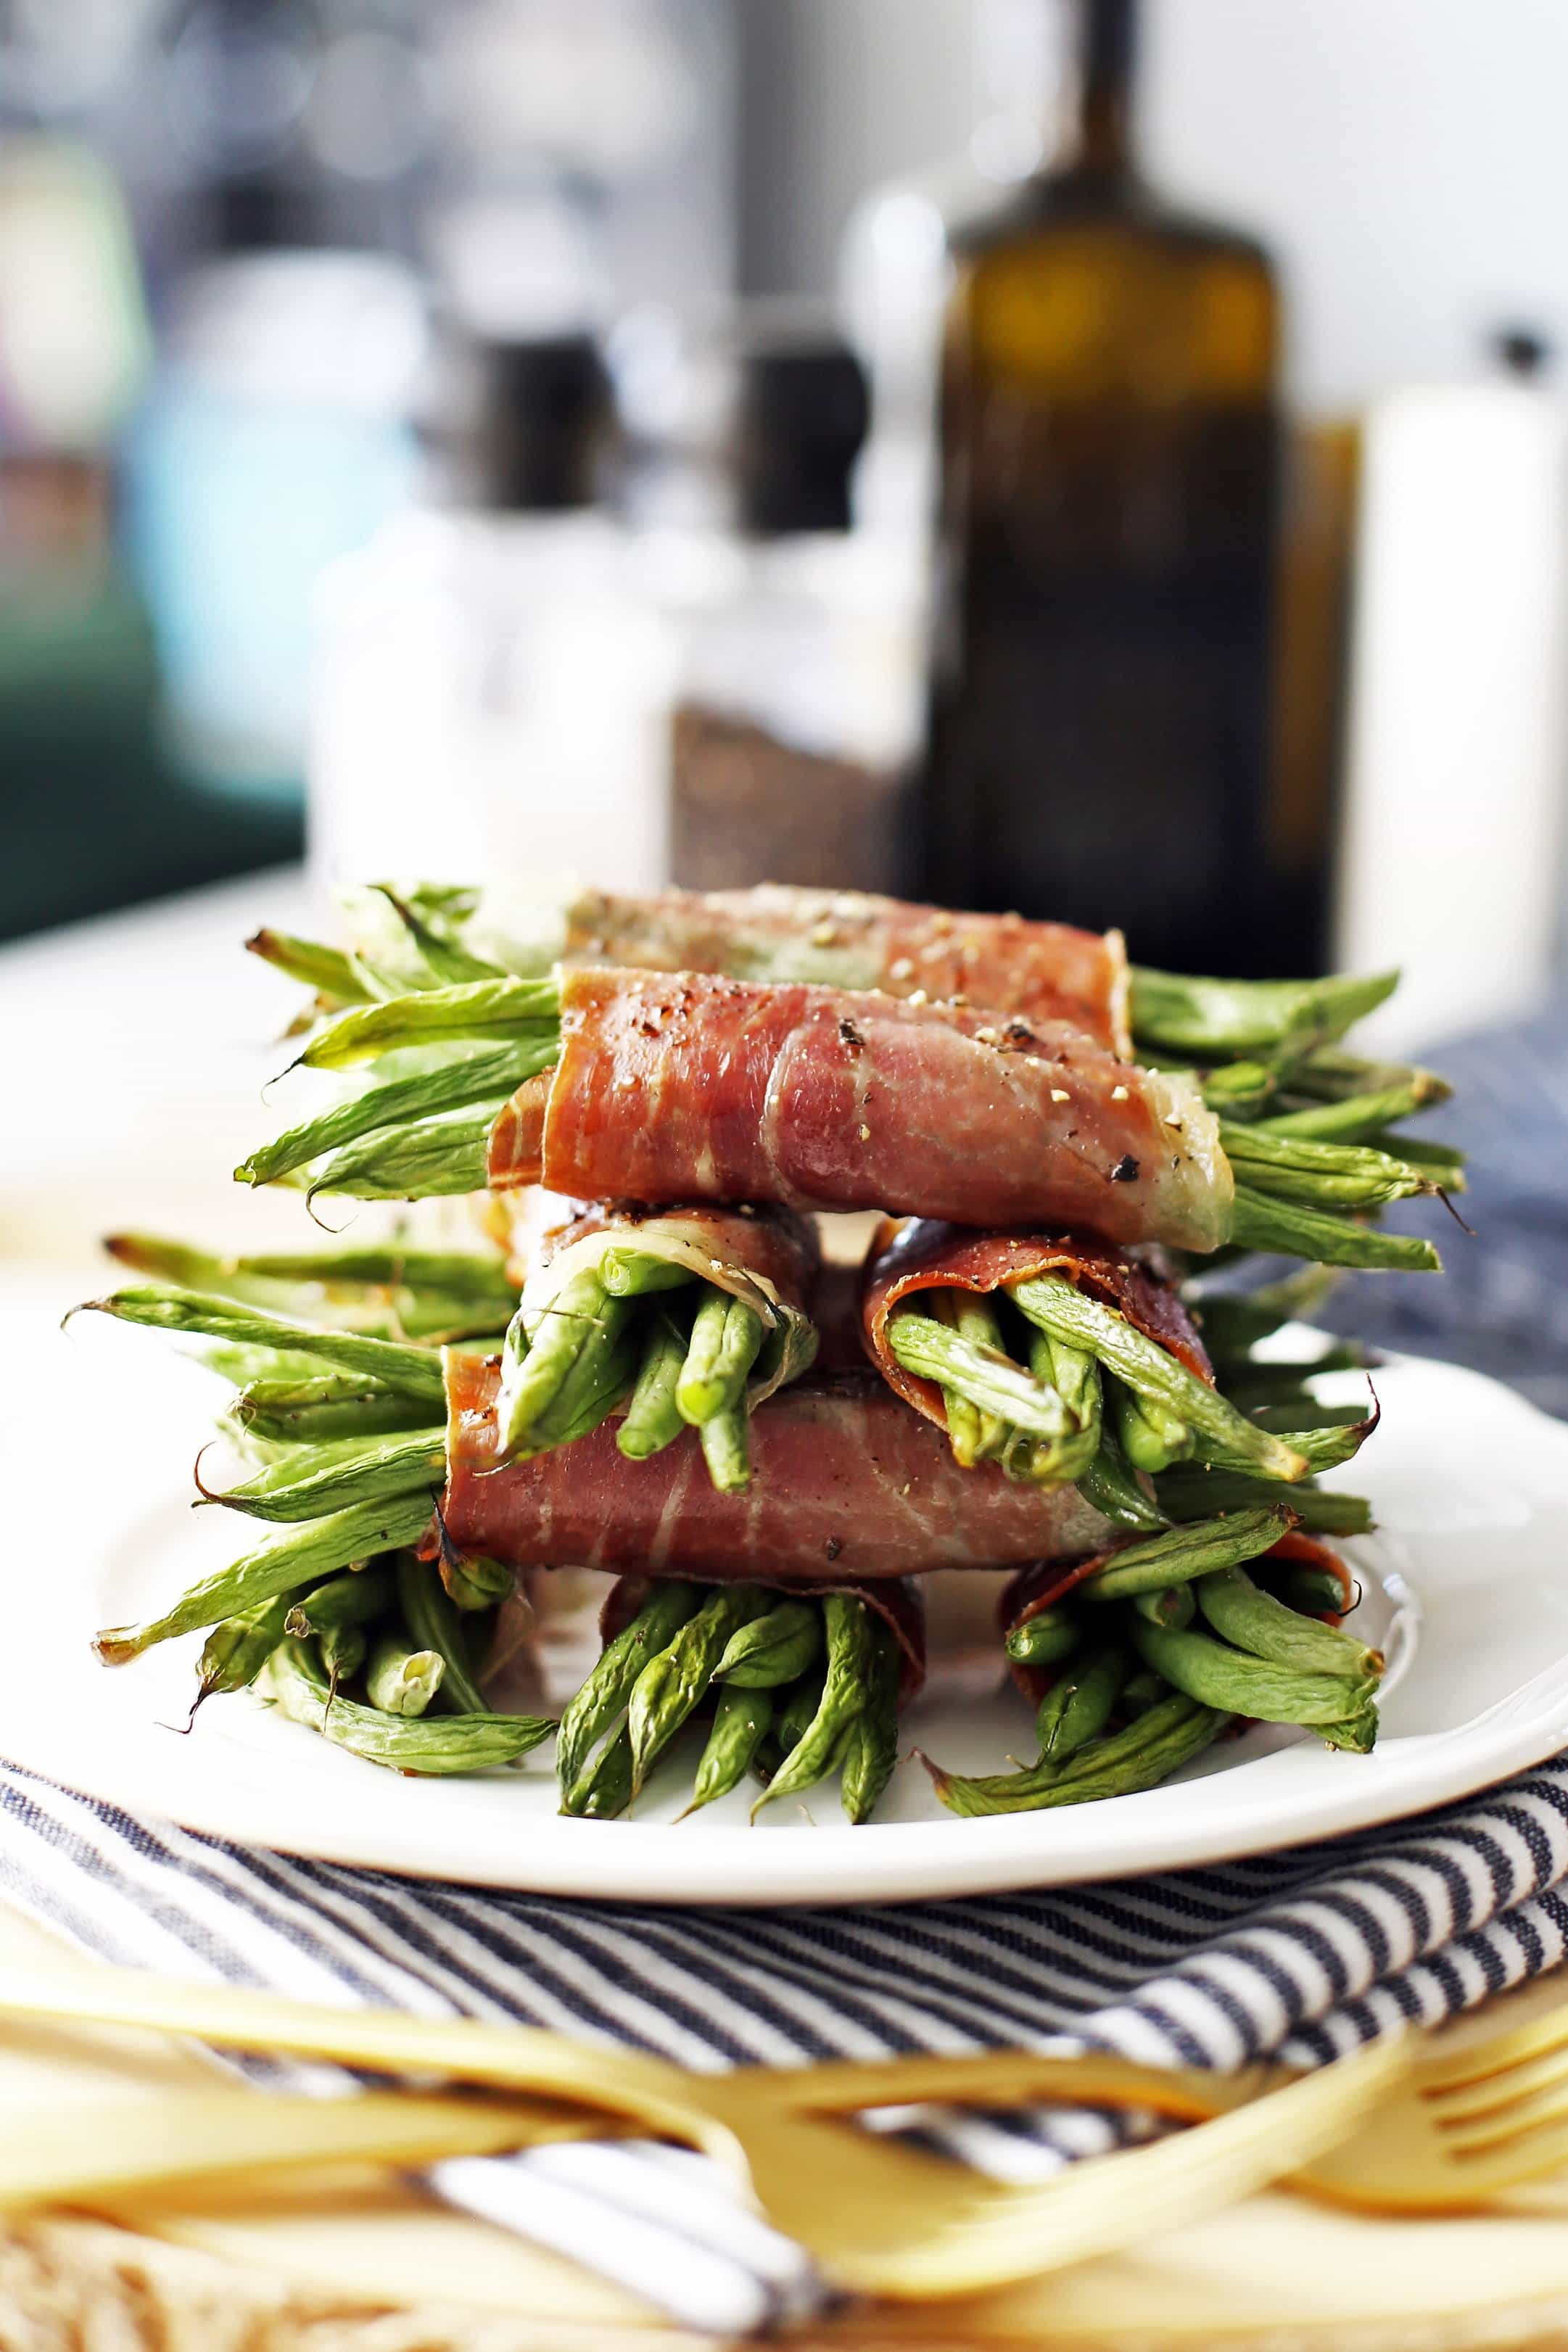 A side view of neatly stacked prosciutto wrapped green bean bundles on a white plate.